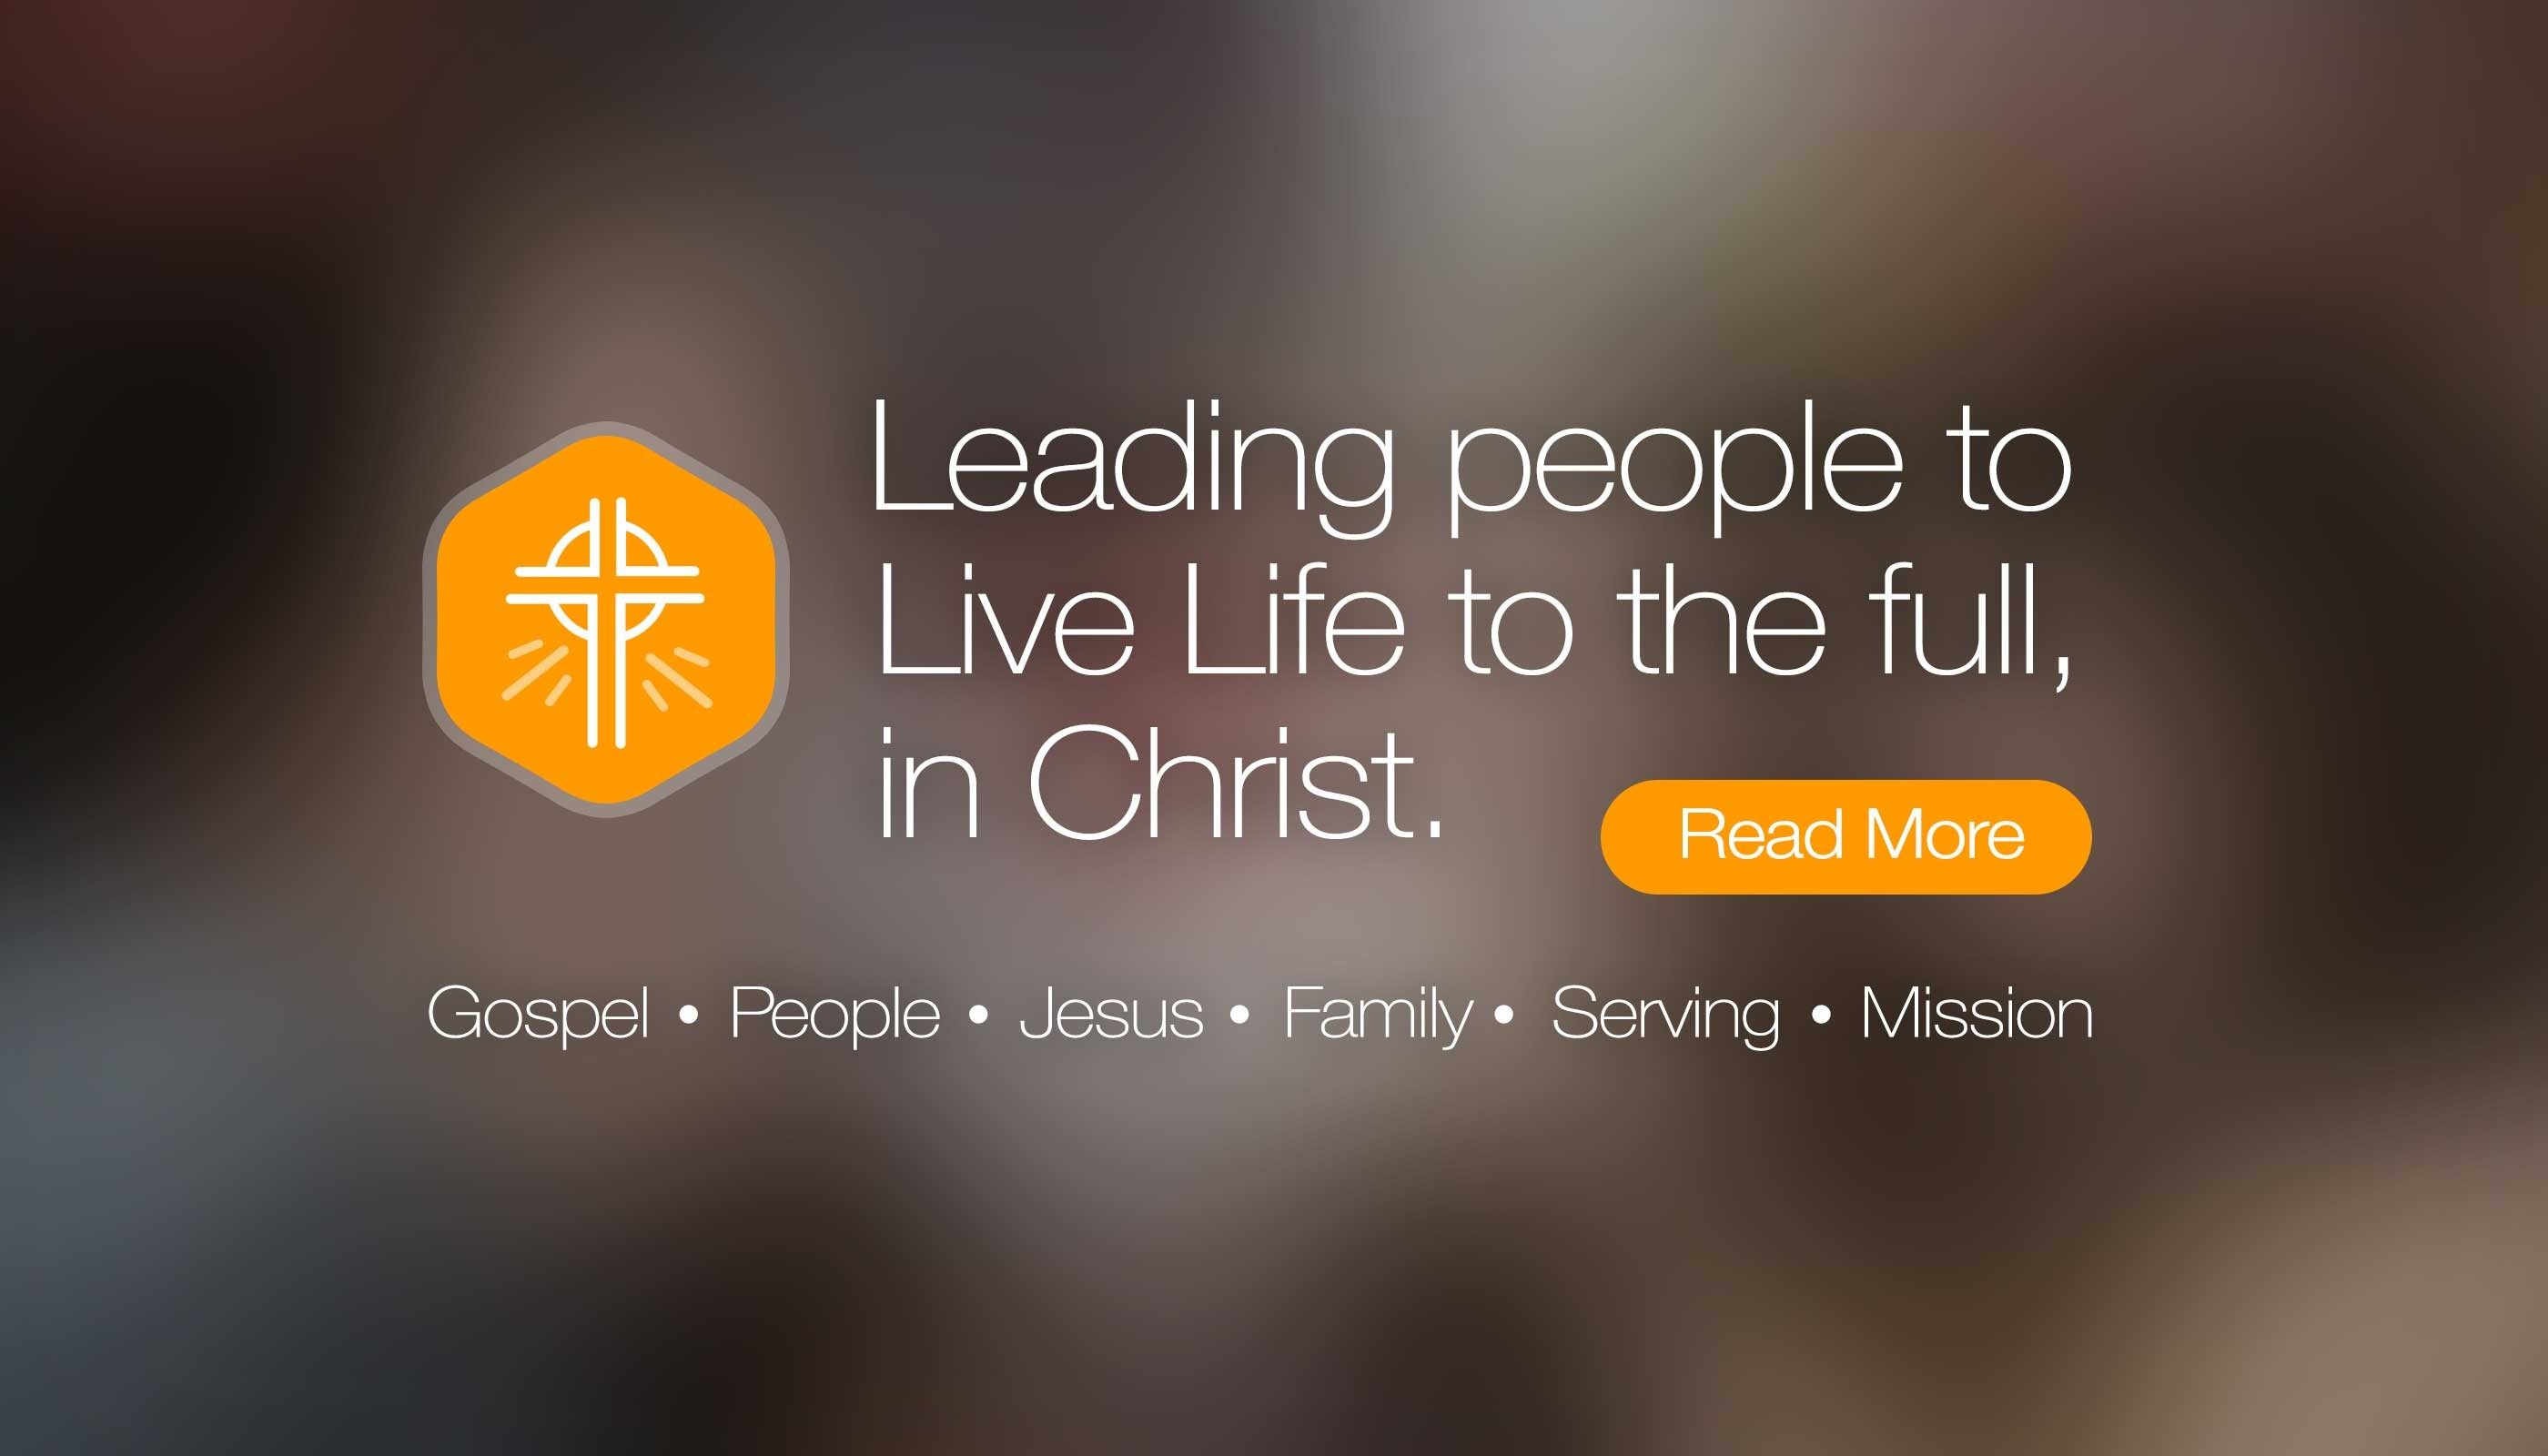 The Life: Leading people to live life to the full in Christ